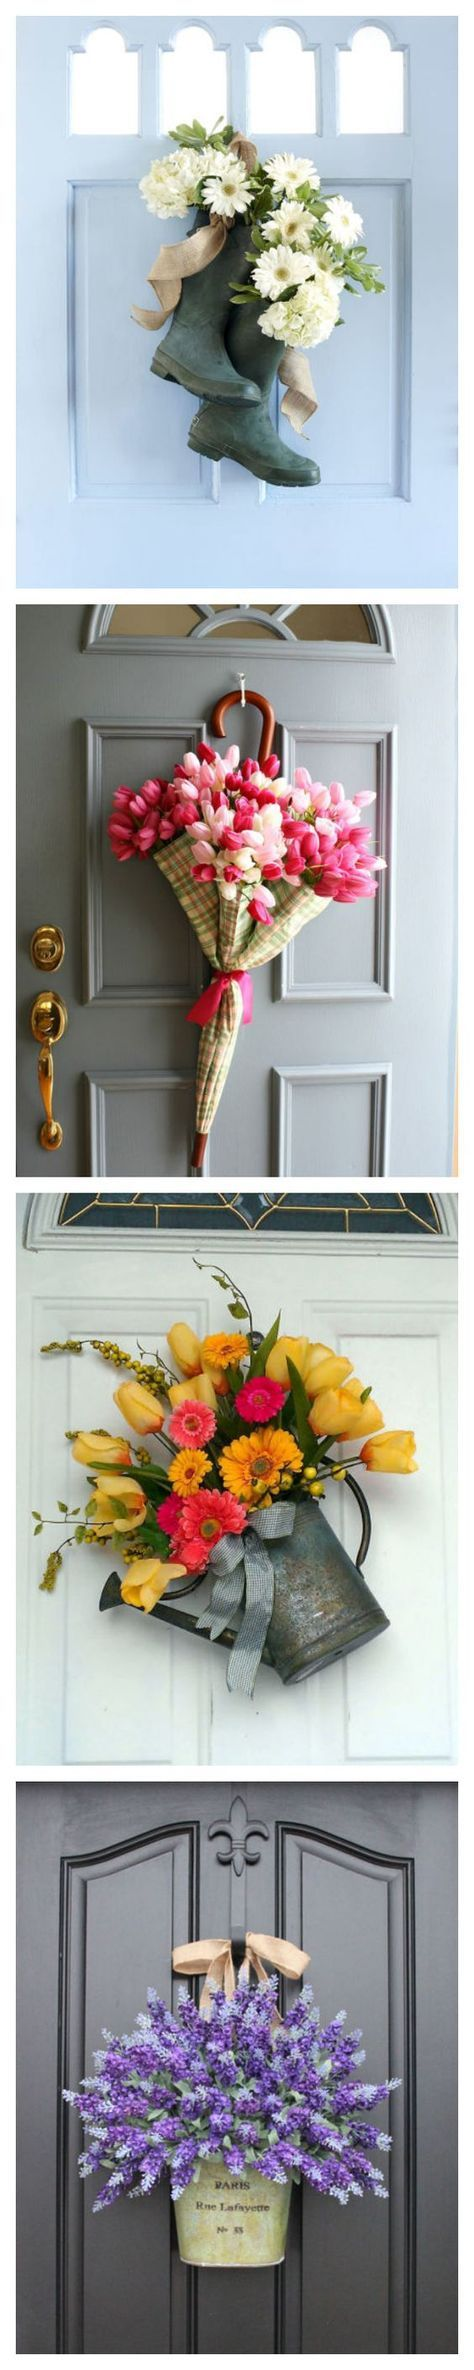 Want to get creative with your door decoration? Try one of these DIY ideas that aren't wreaths.